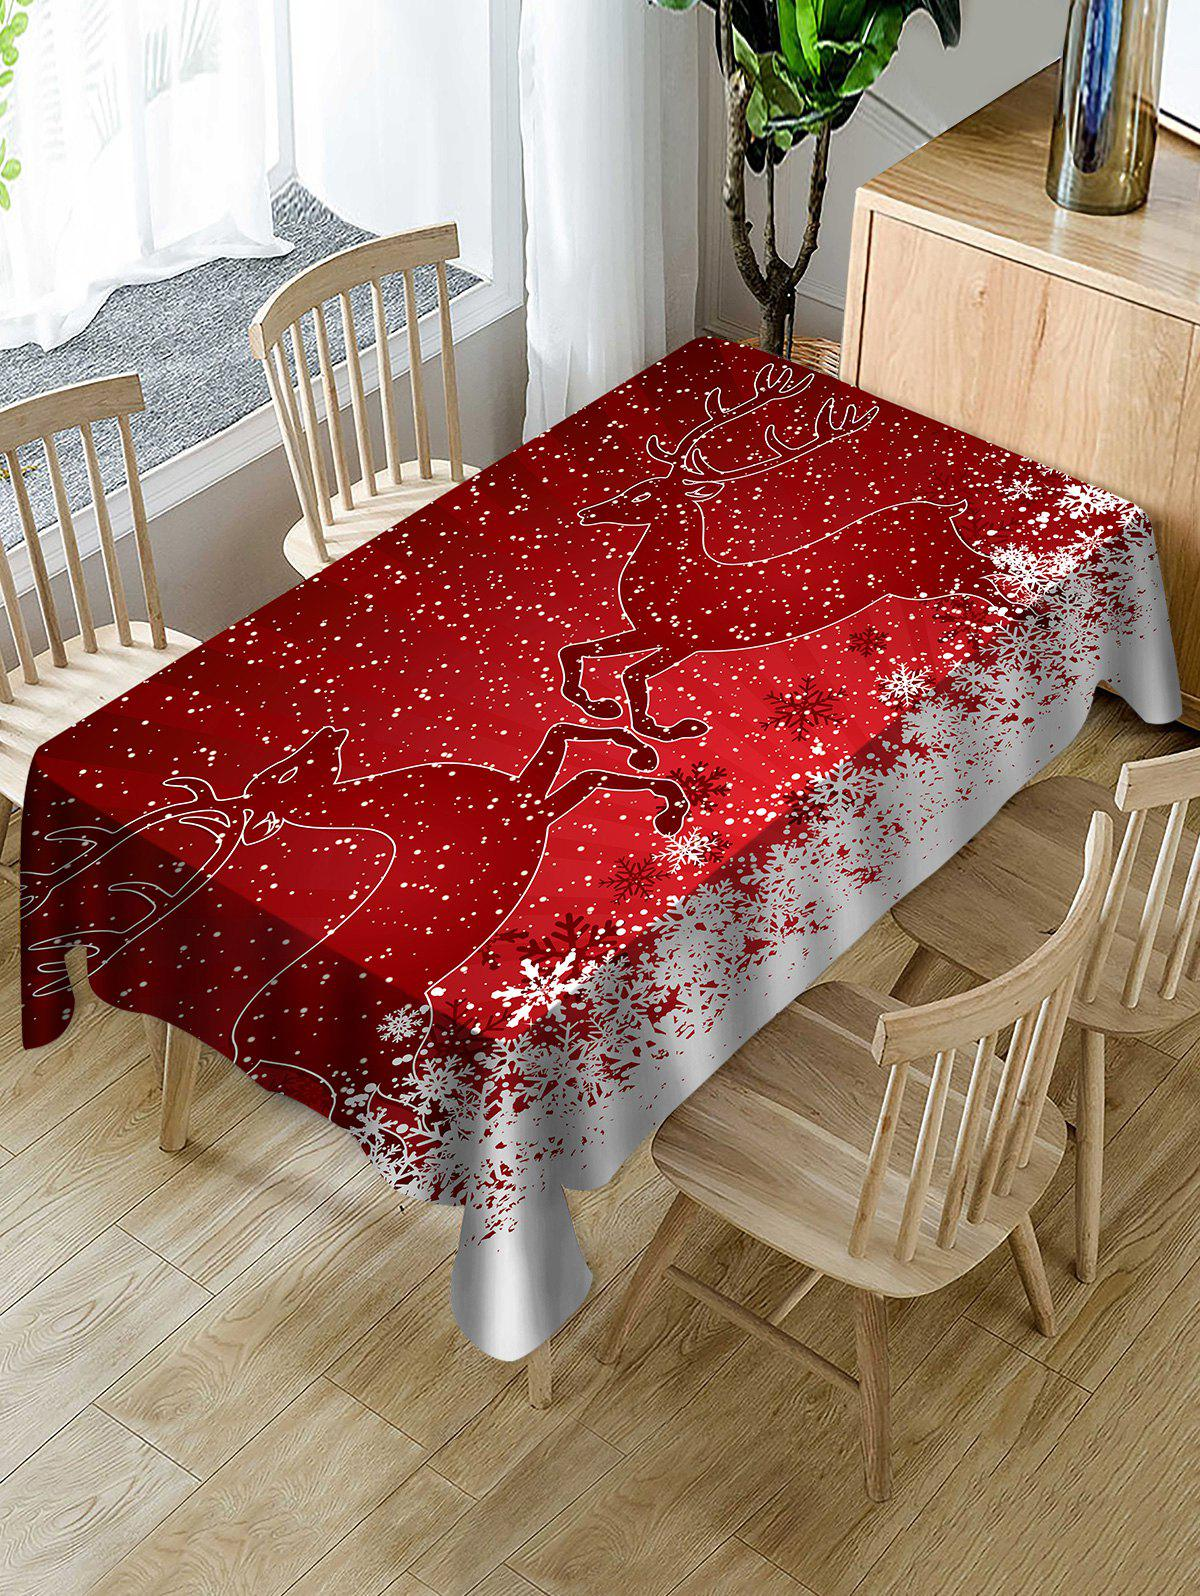 Store Christmas Deer Print Fabric Waterproof Tablecloth